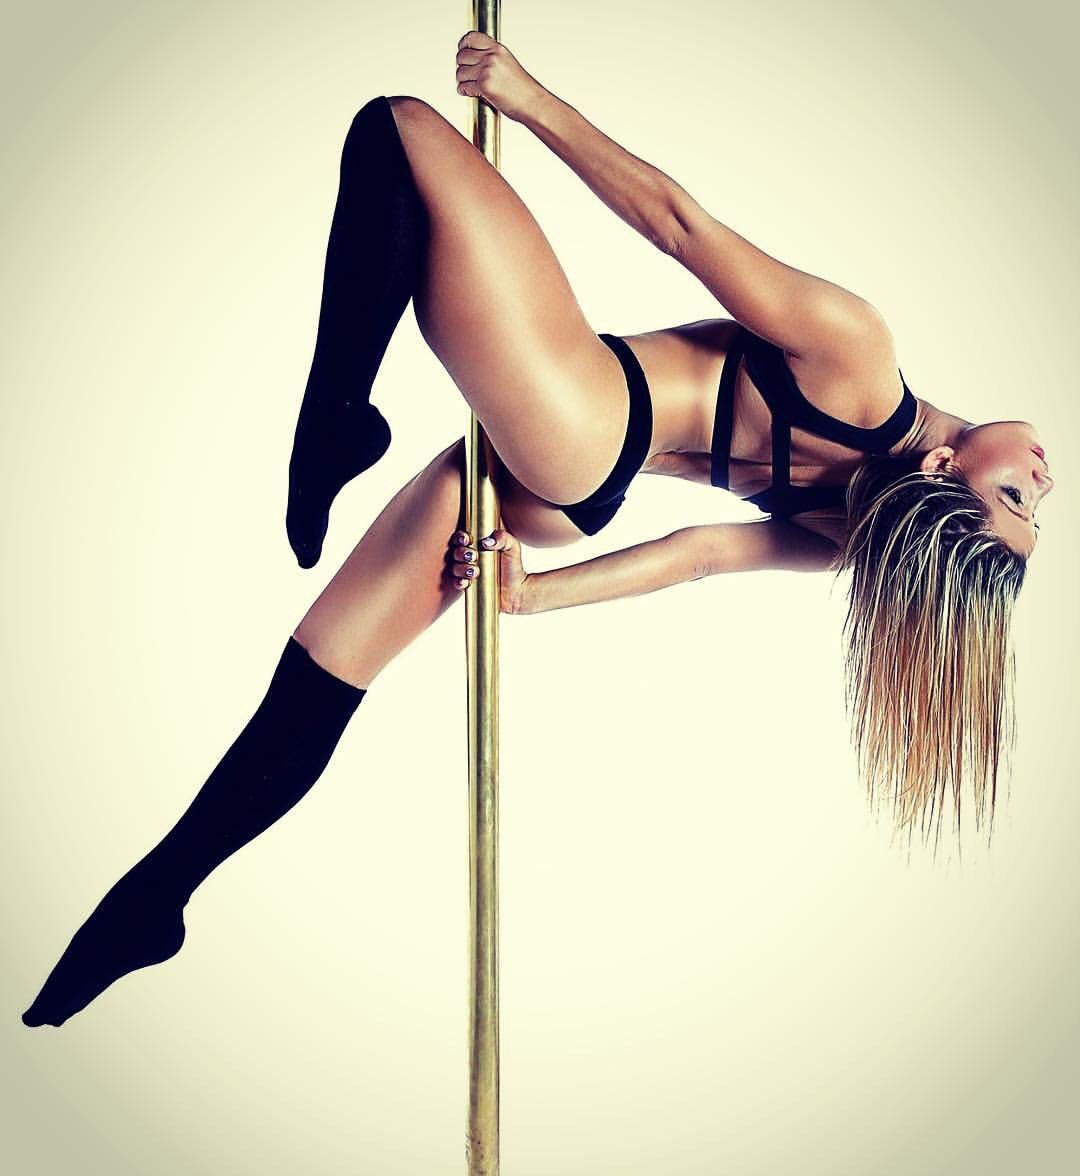 Maddie sparkles pole dance moves are out of this world